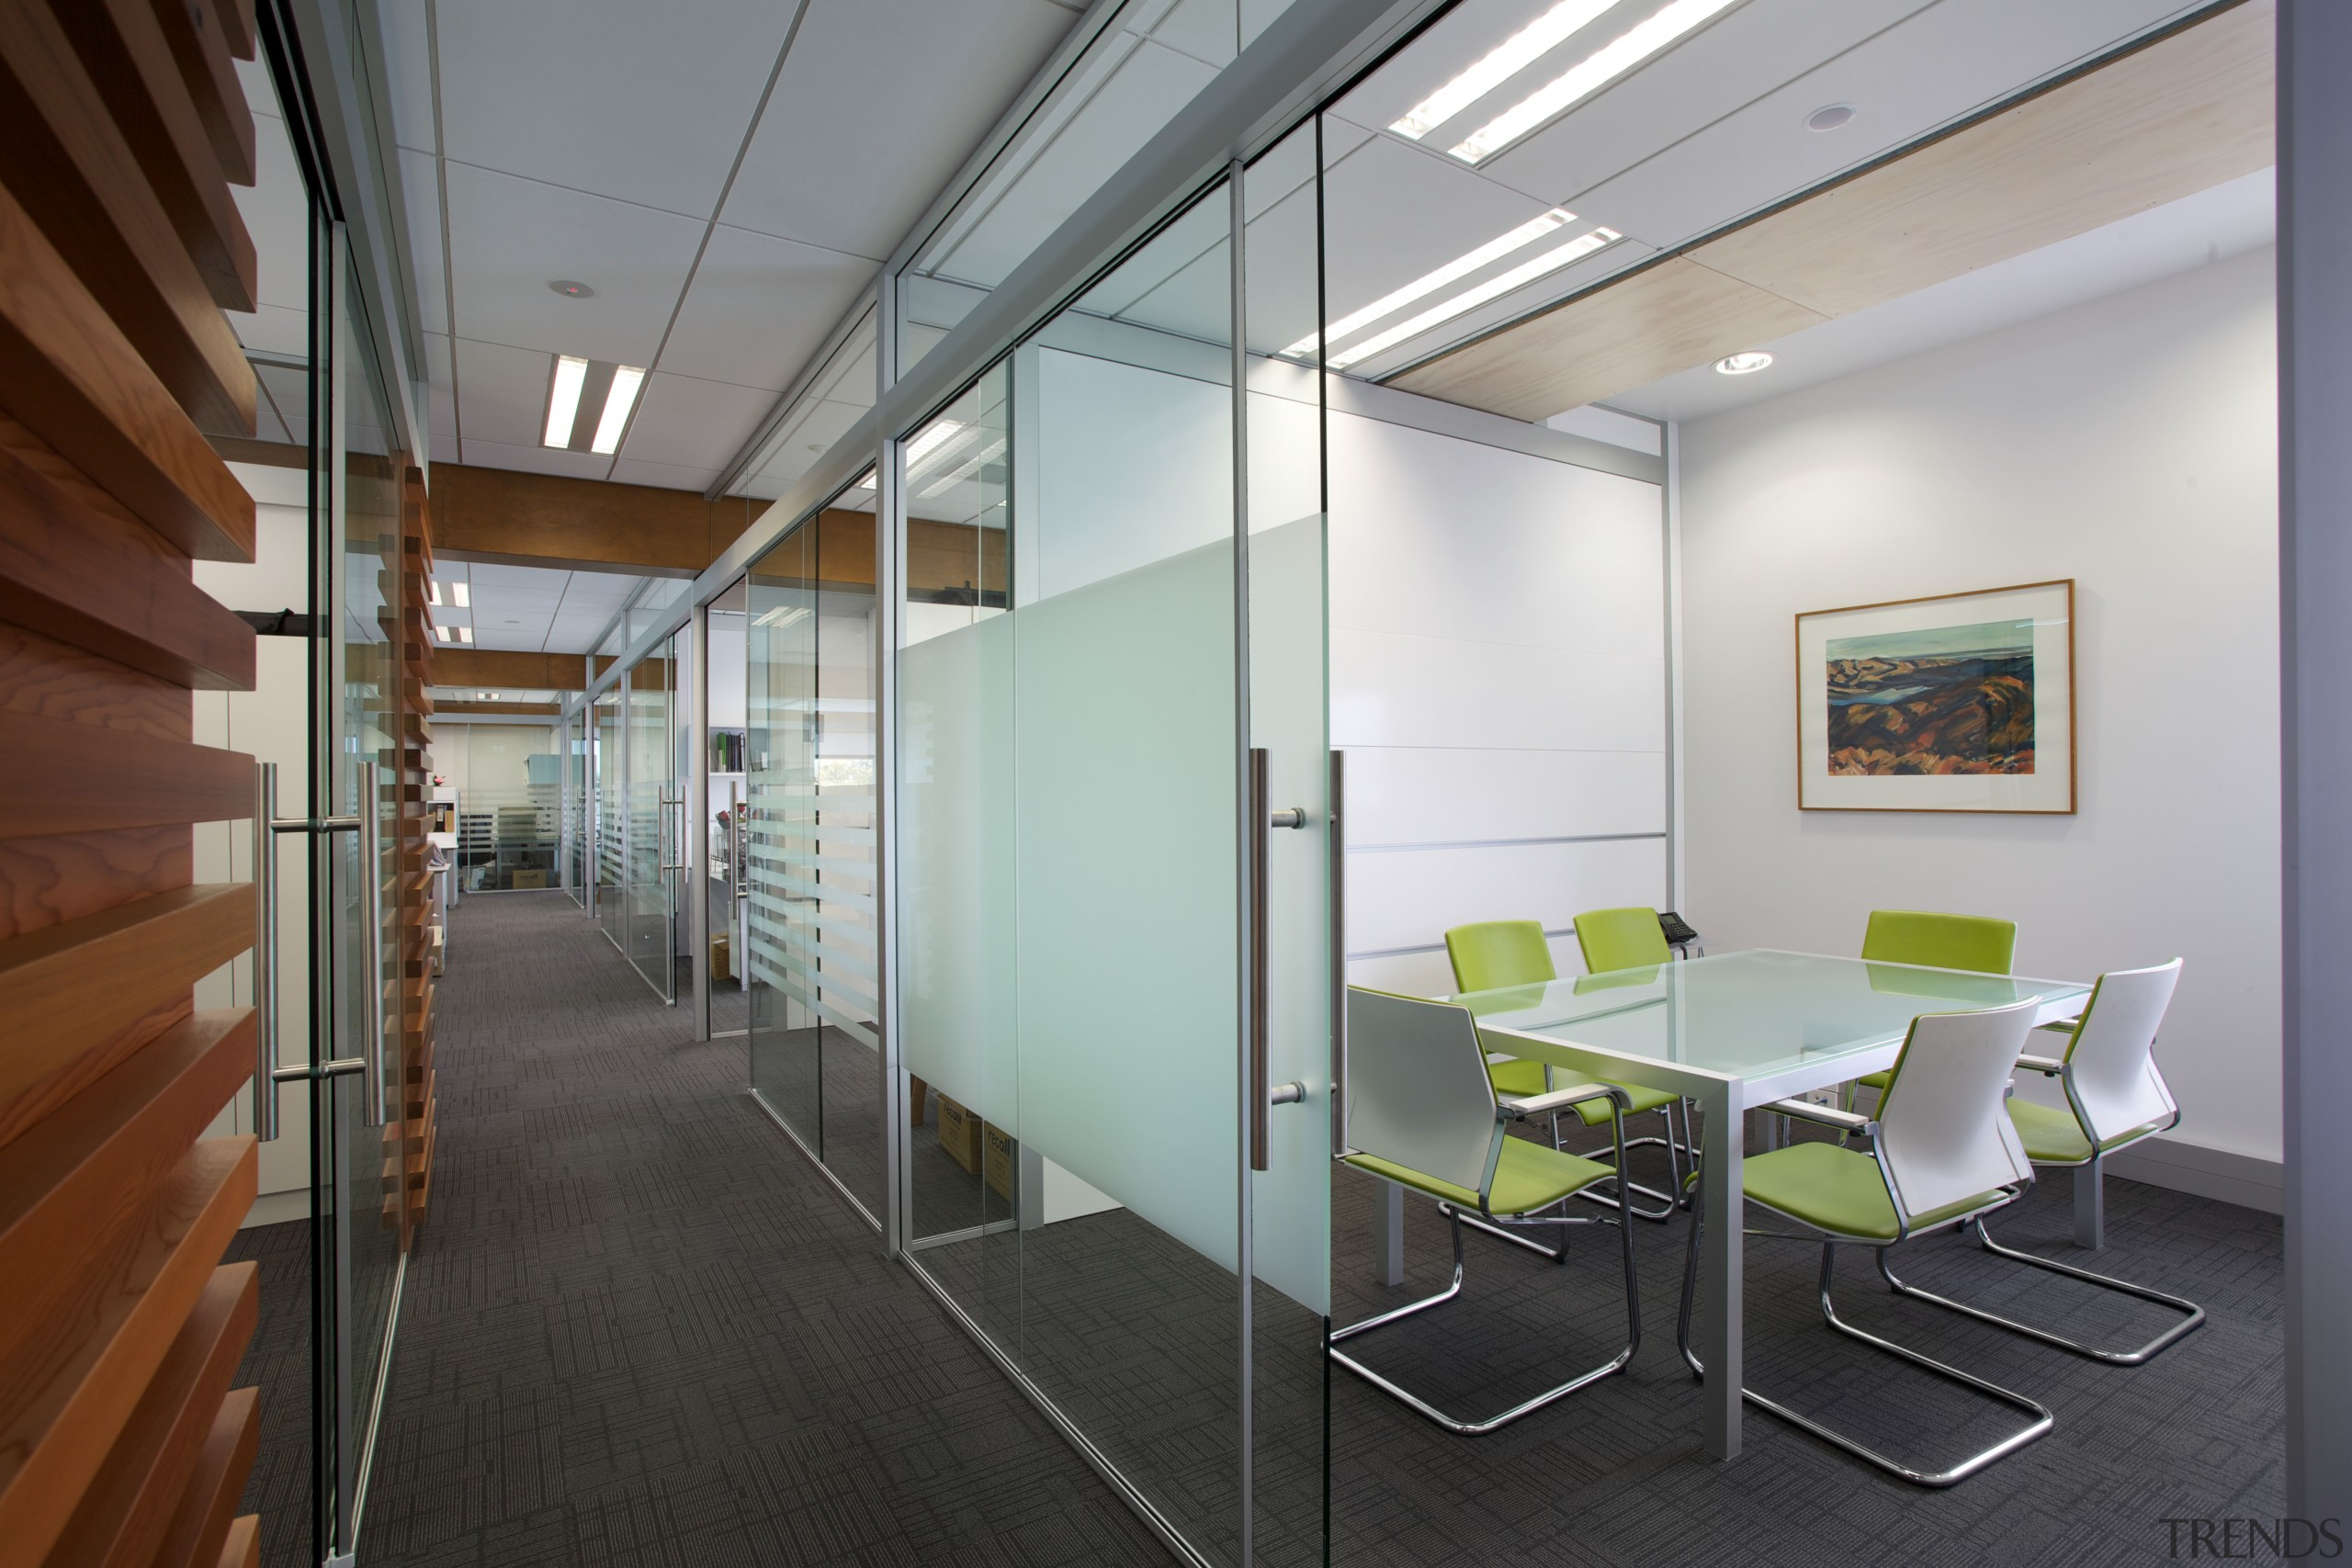 Timber battens and glass-walled meeting rooms are features architecture, ceiling, conference hall, daylighting, interior design, office, gray